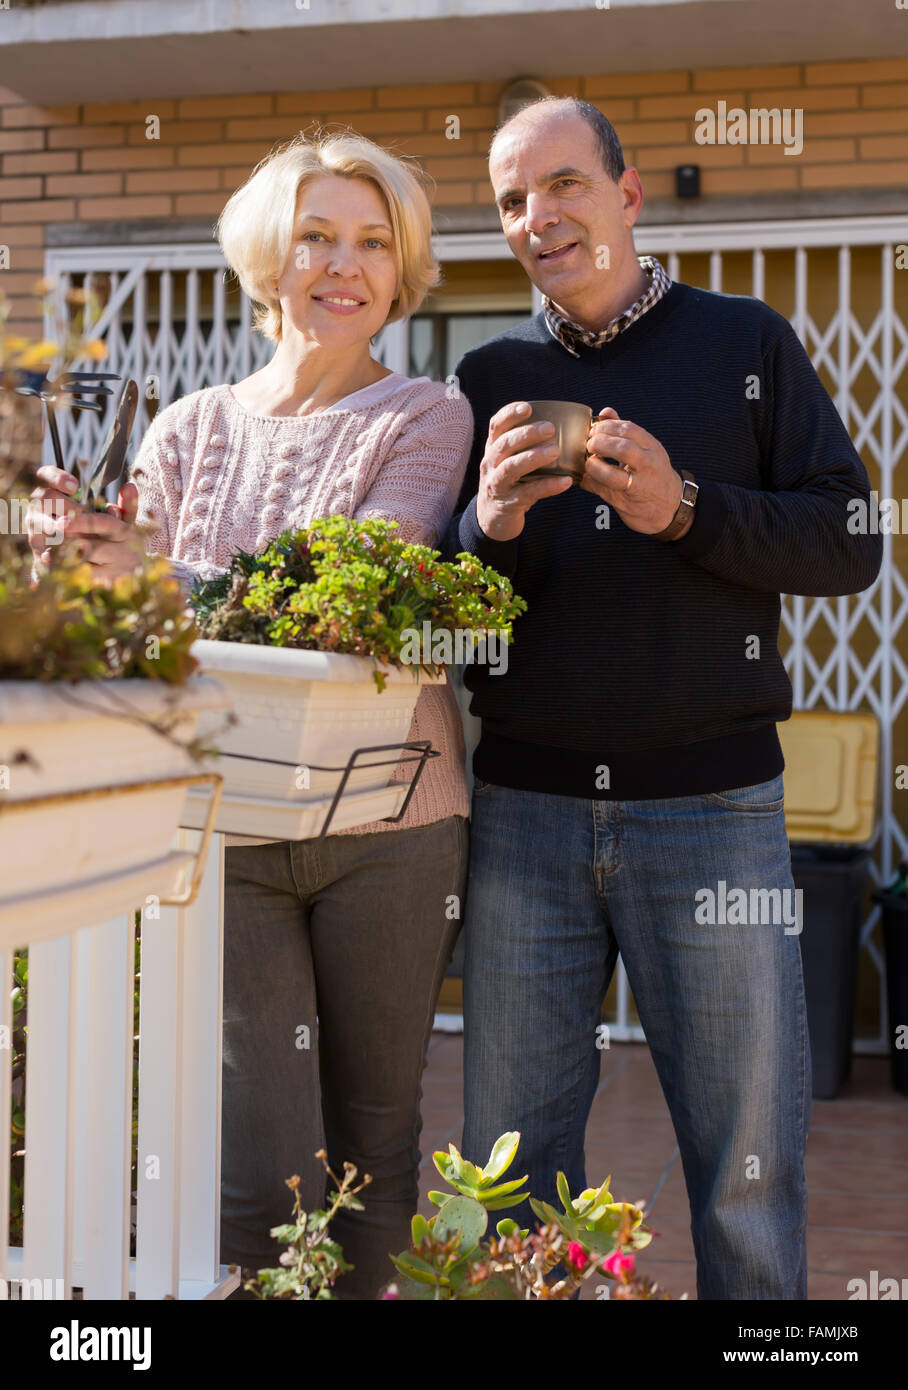 Happy smiling elderly woman with horticultural sundry and aged man drinking tea in patio Stock Photo